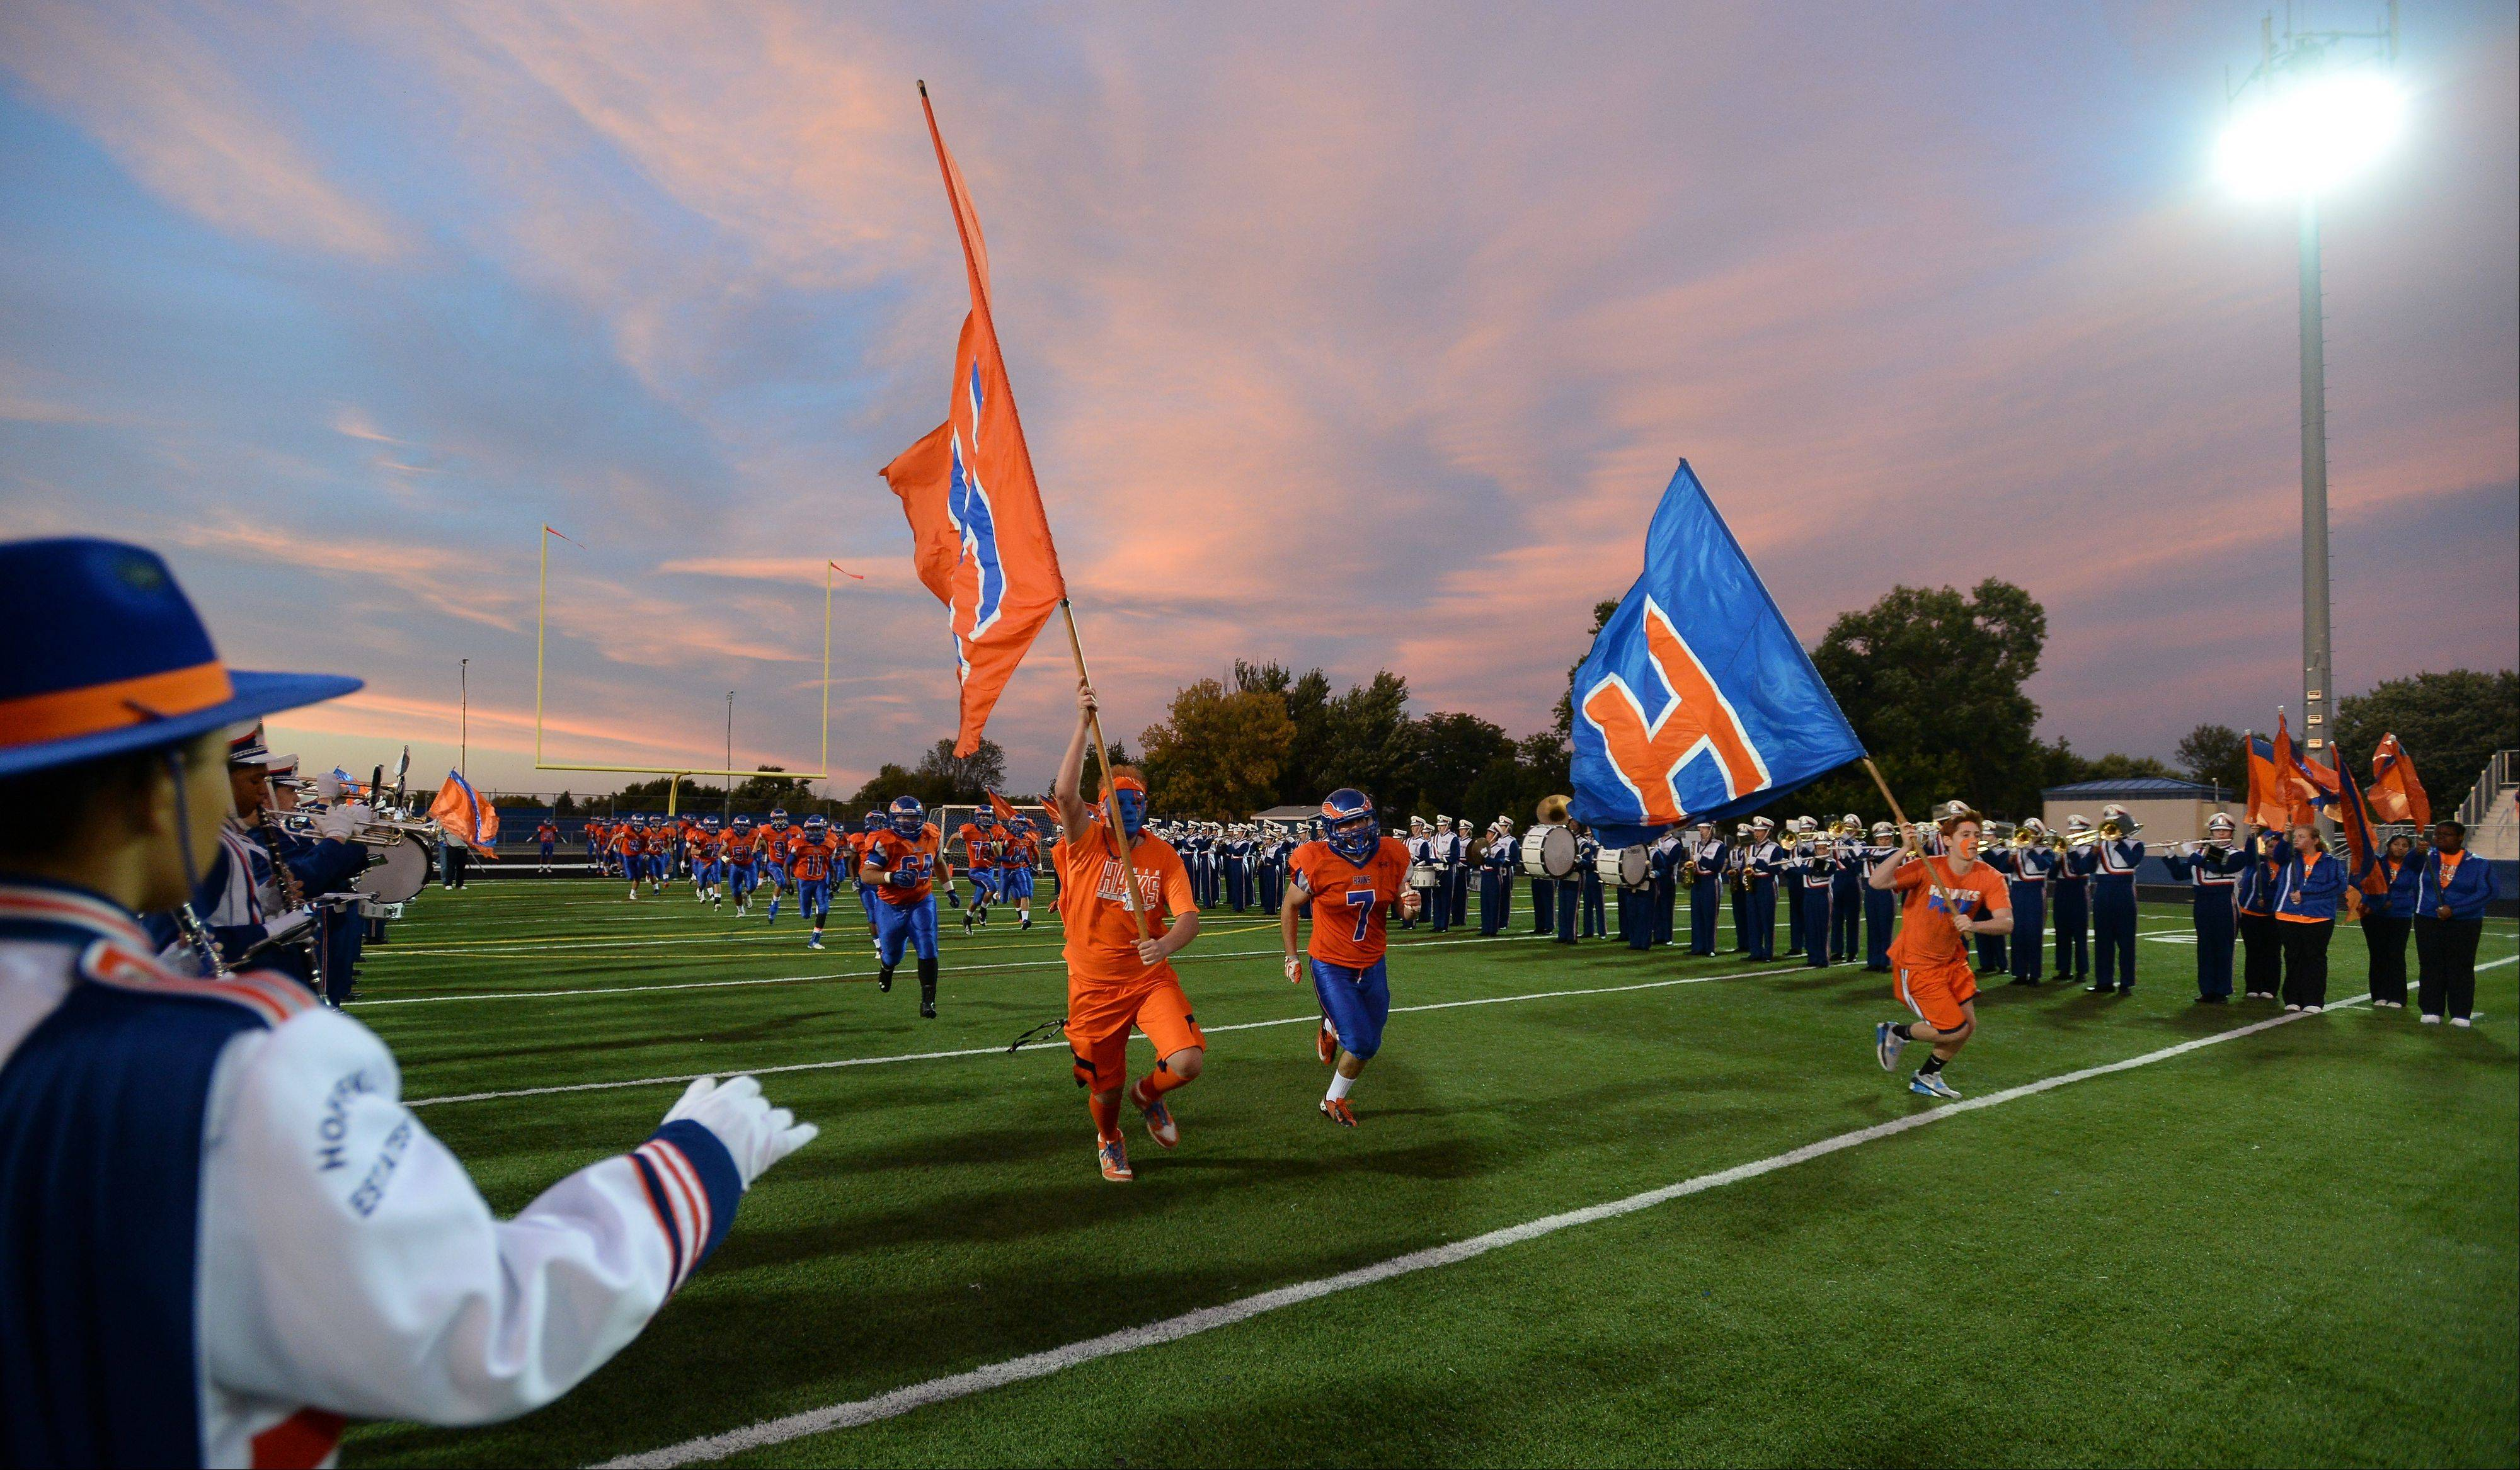 Week -4- Photos from the Hoffman Estates vs. Wheeling football game on Friday, September 20th, in Hoffman Estates